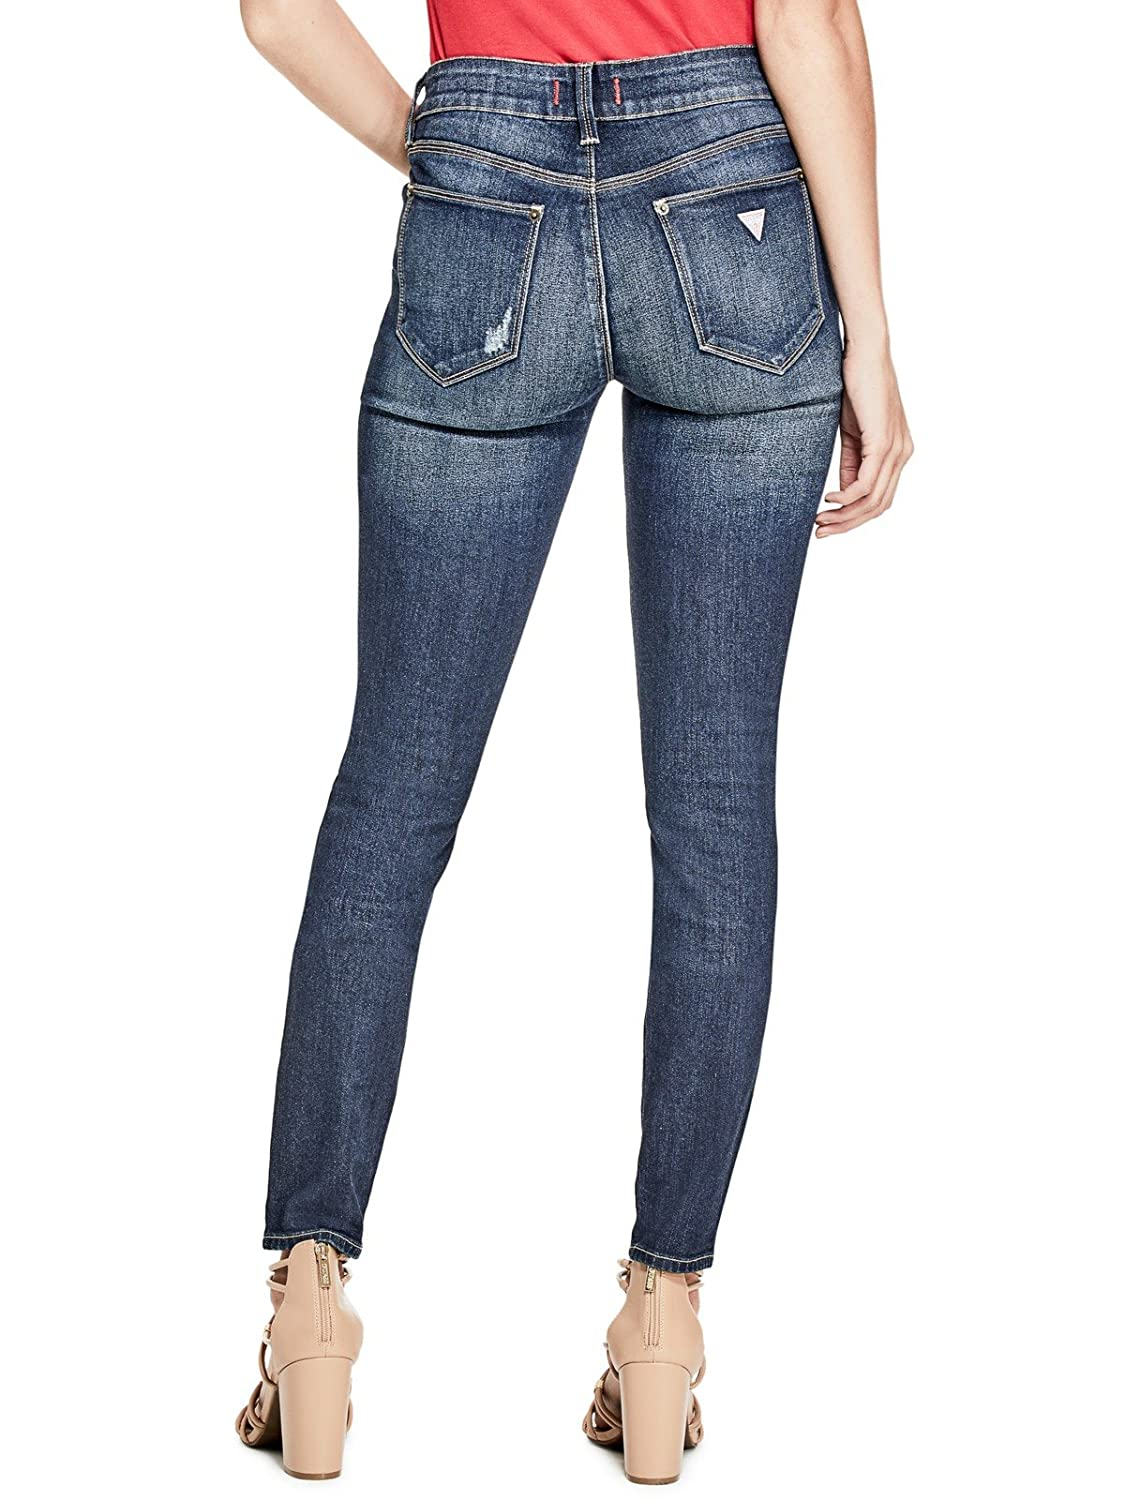 Guess Jeans Buy Guess Jeans online in India